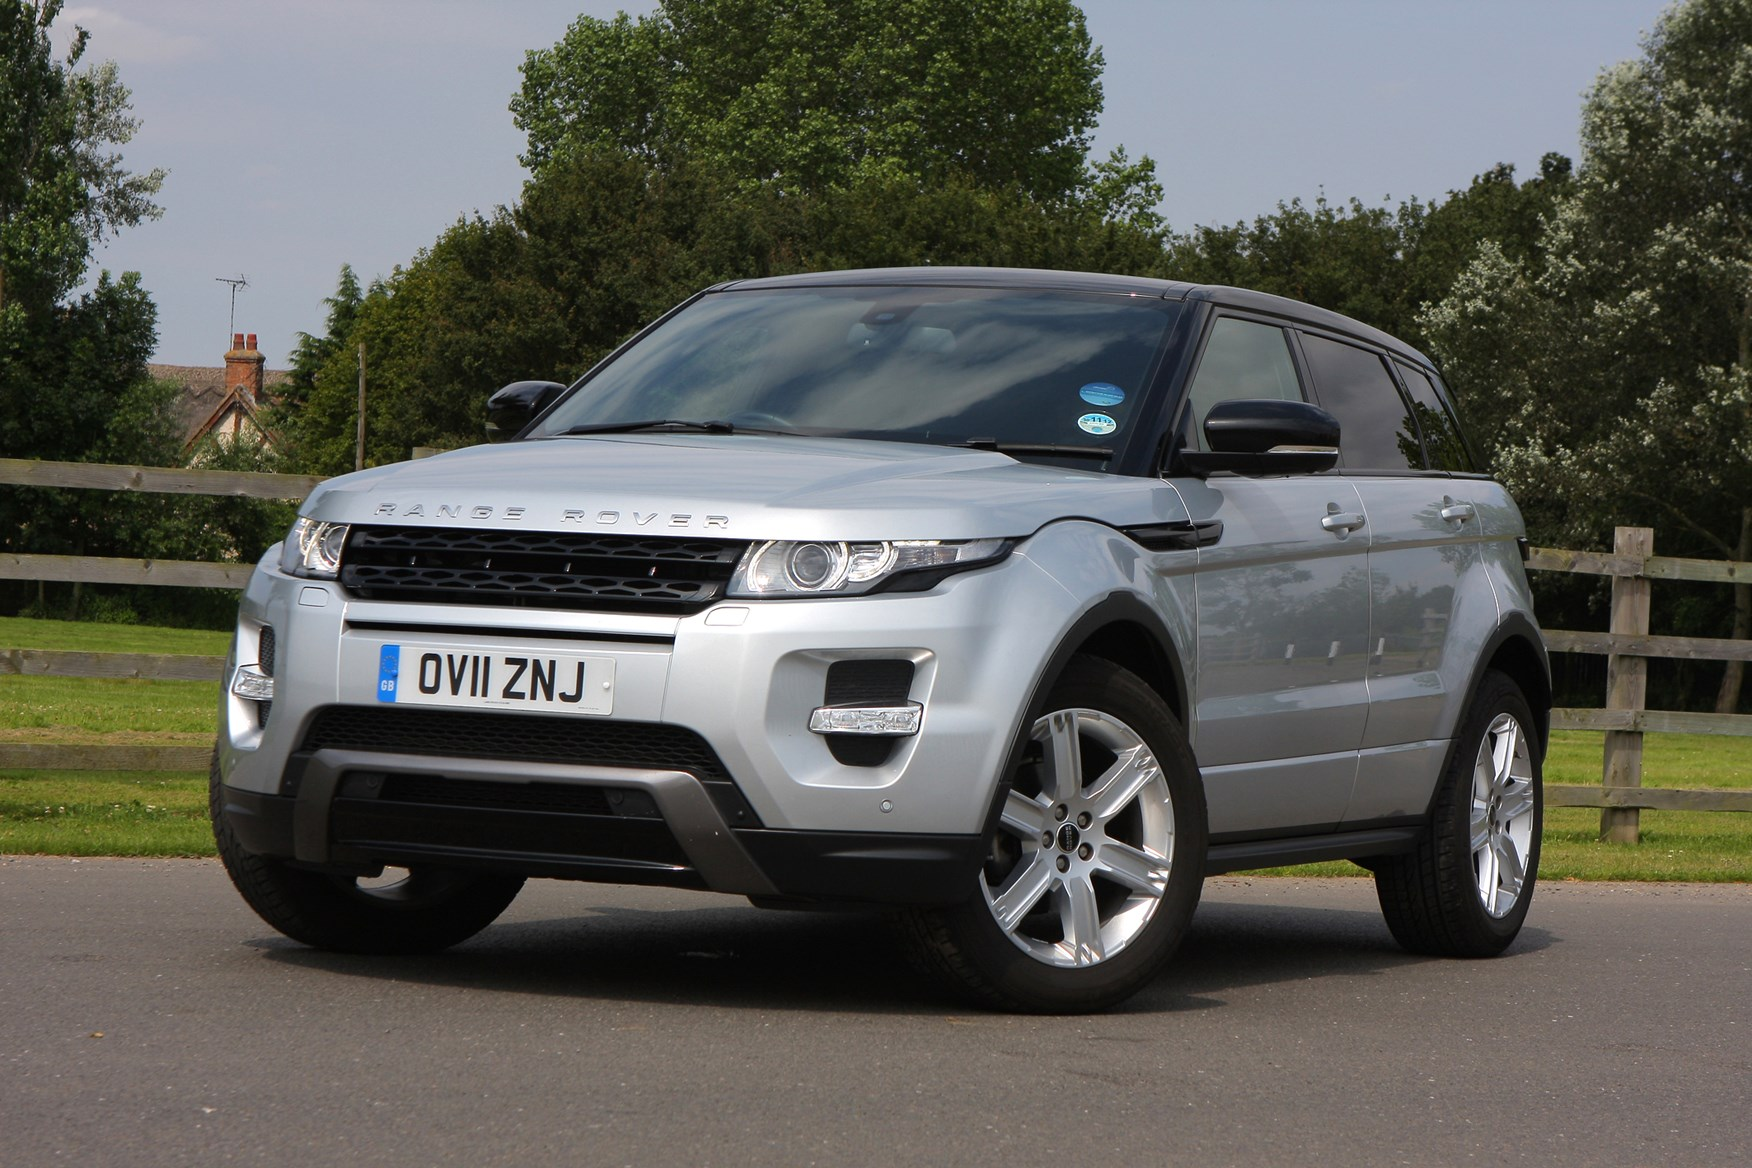 used land rover range rover evoque for sale parkers autos post. Black Bedroom Furniture Sets. Home Design Ideas